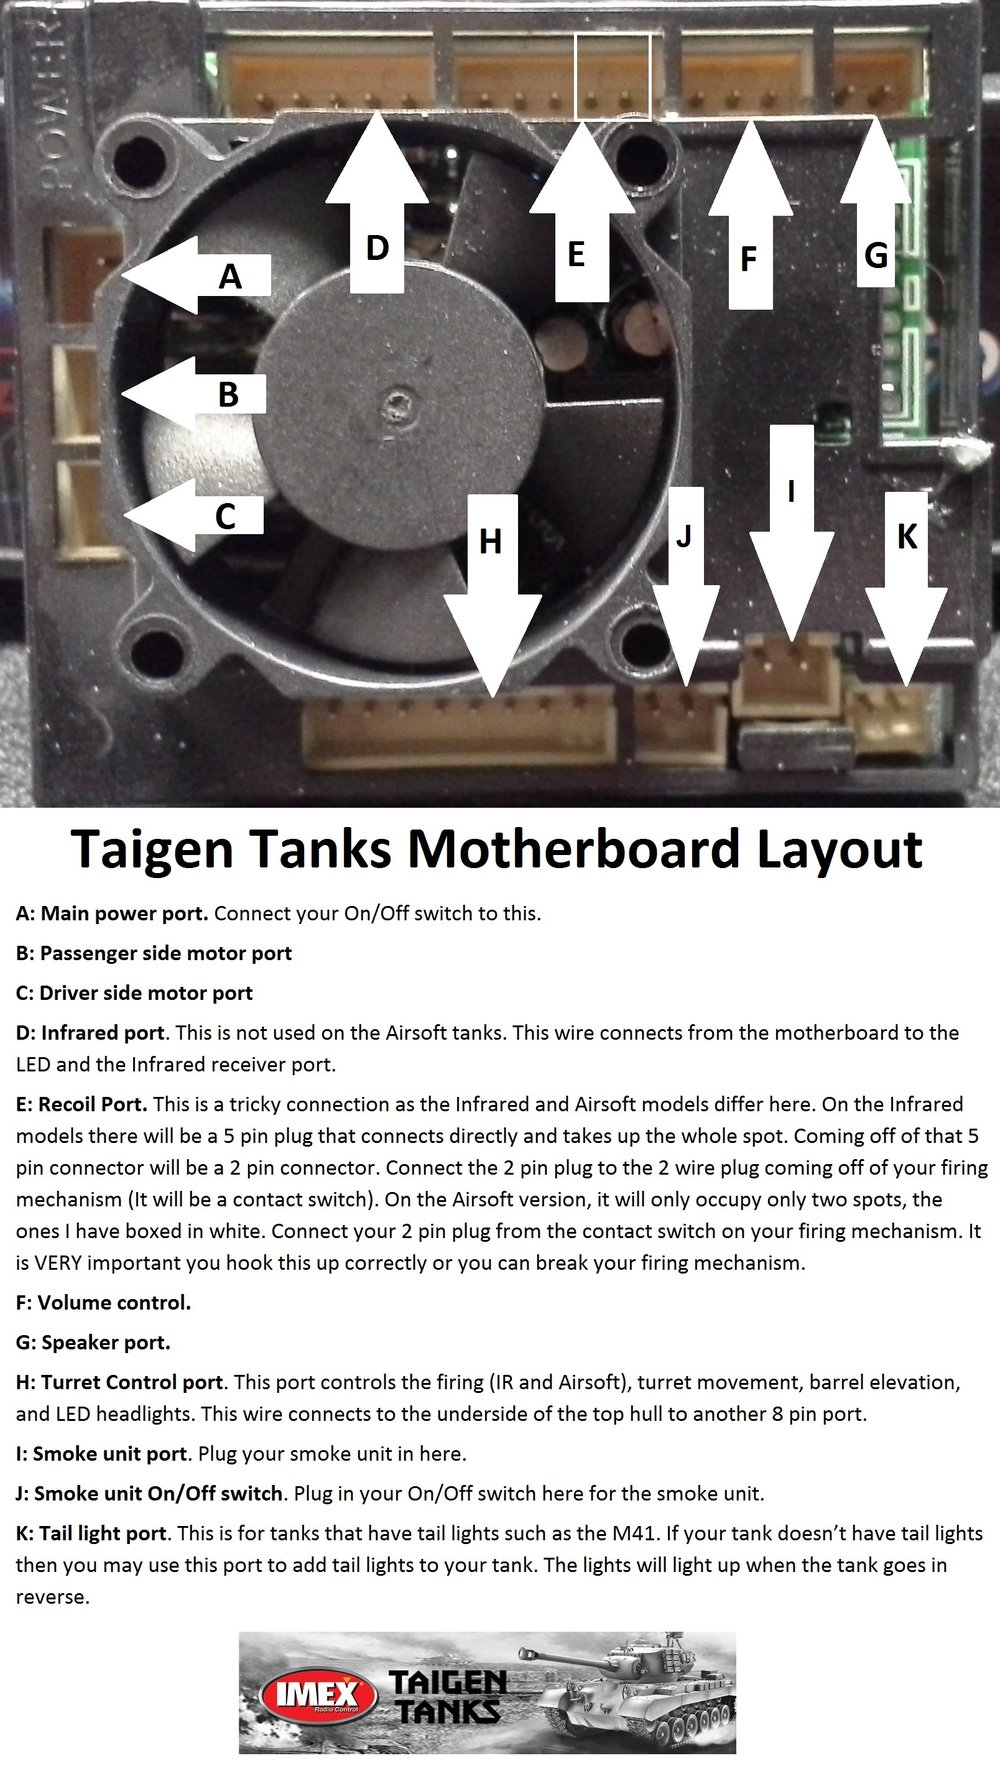 Tank motherboard layout.jpg